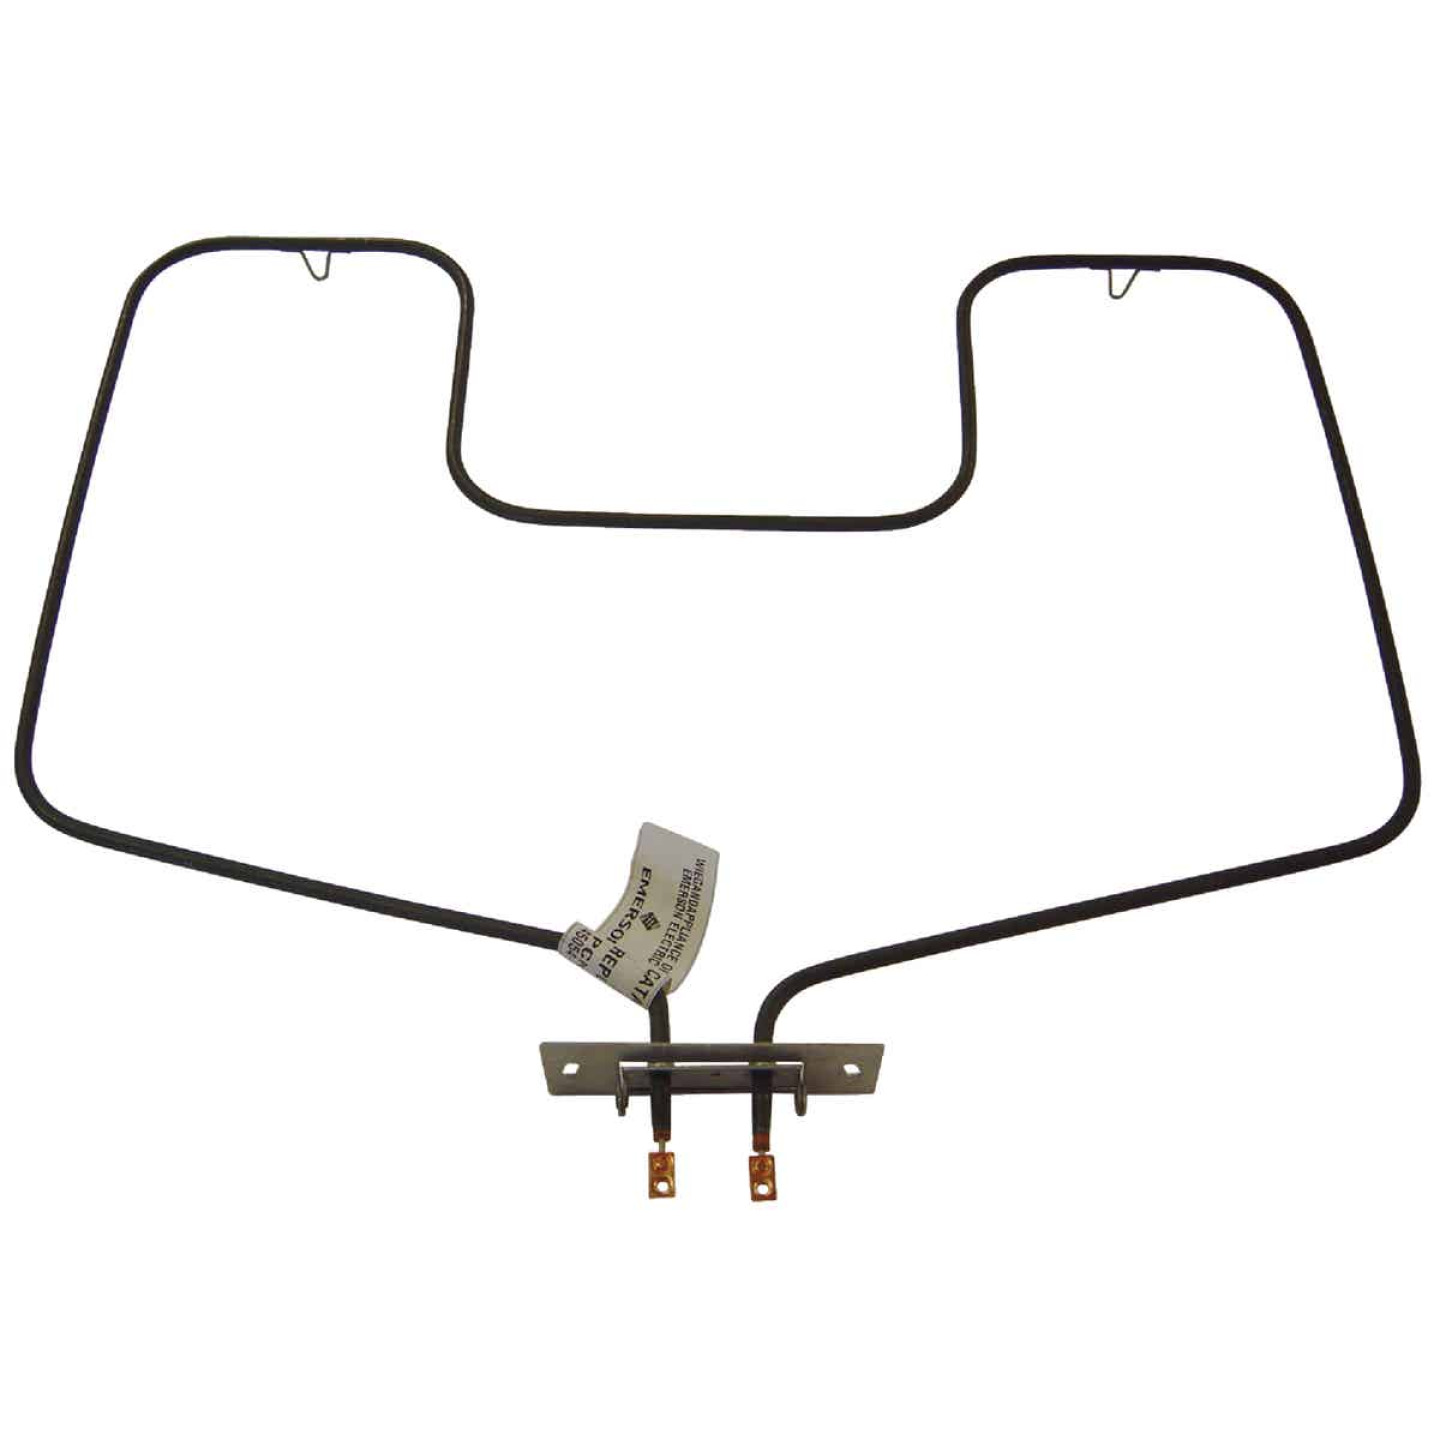 Range Kleen 3000W Replacement Self-Cleaning Oven Element Image 1